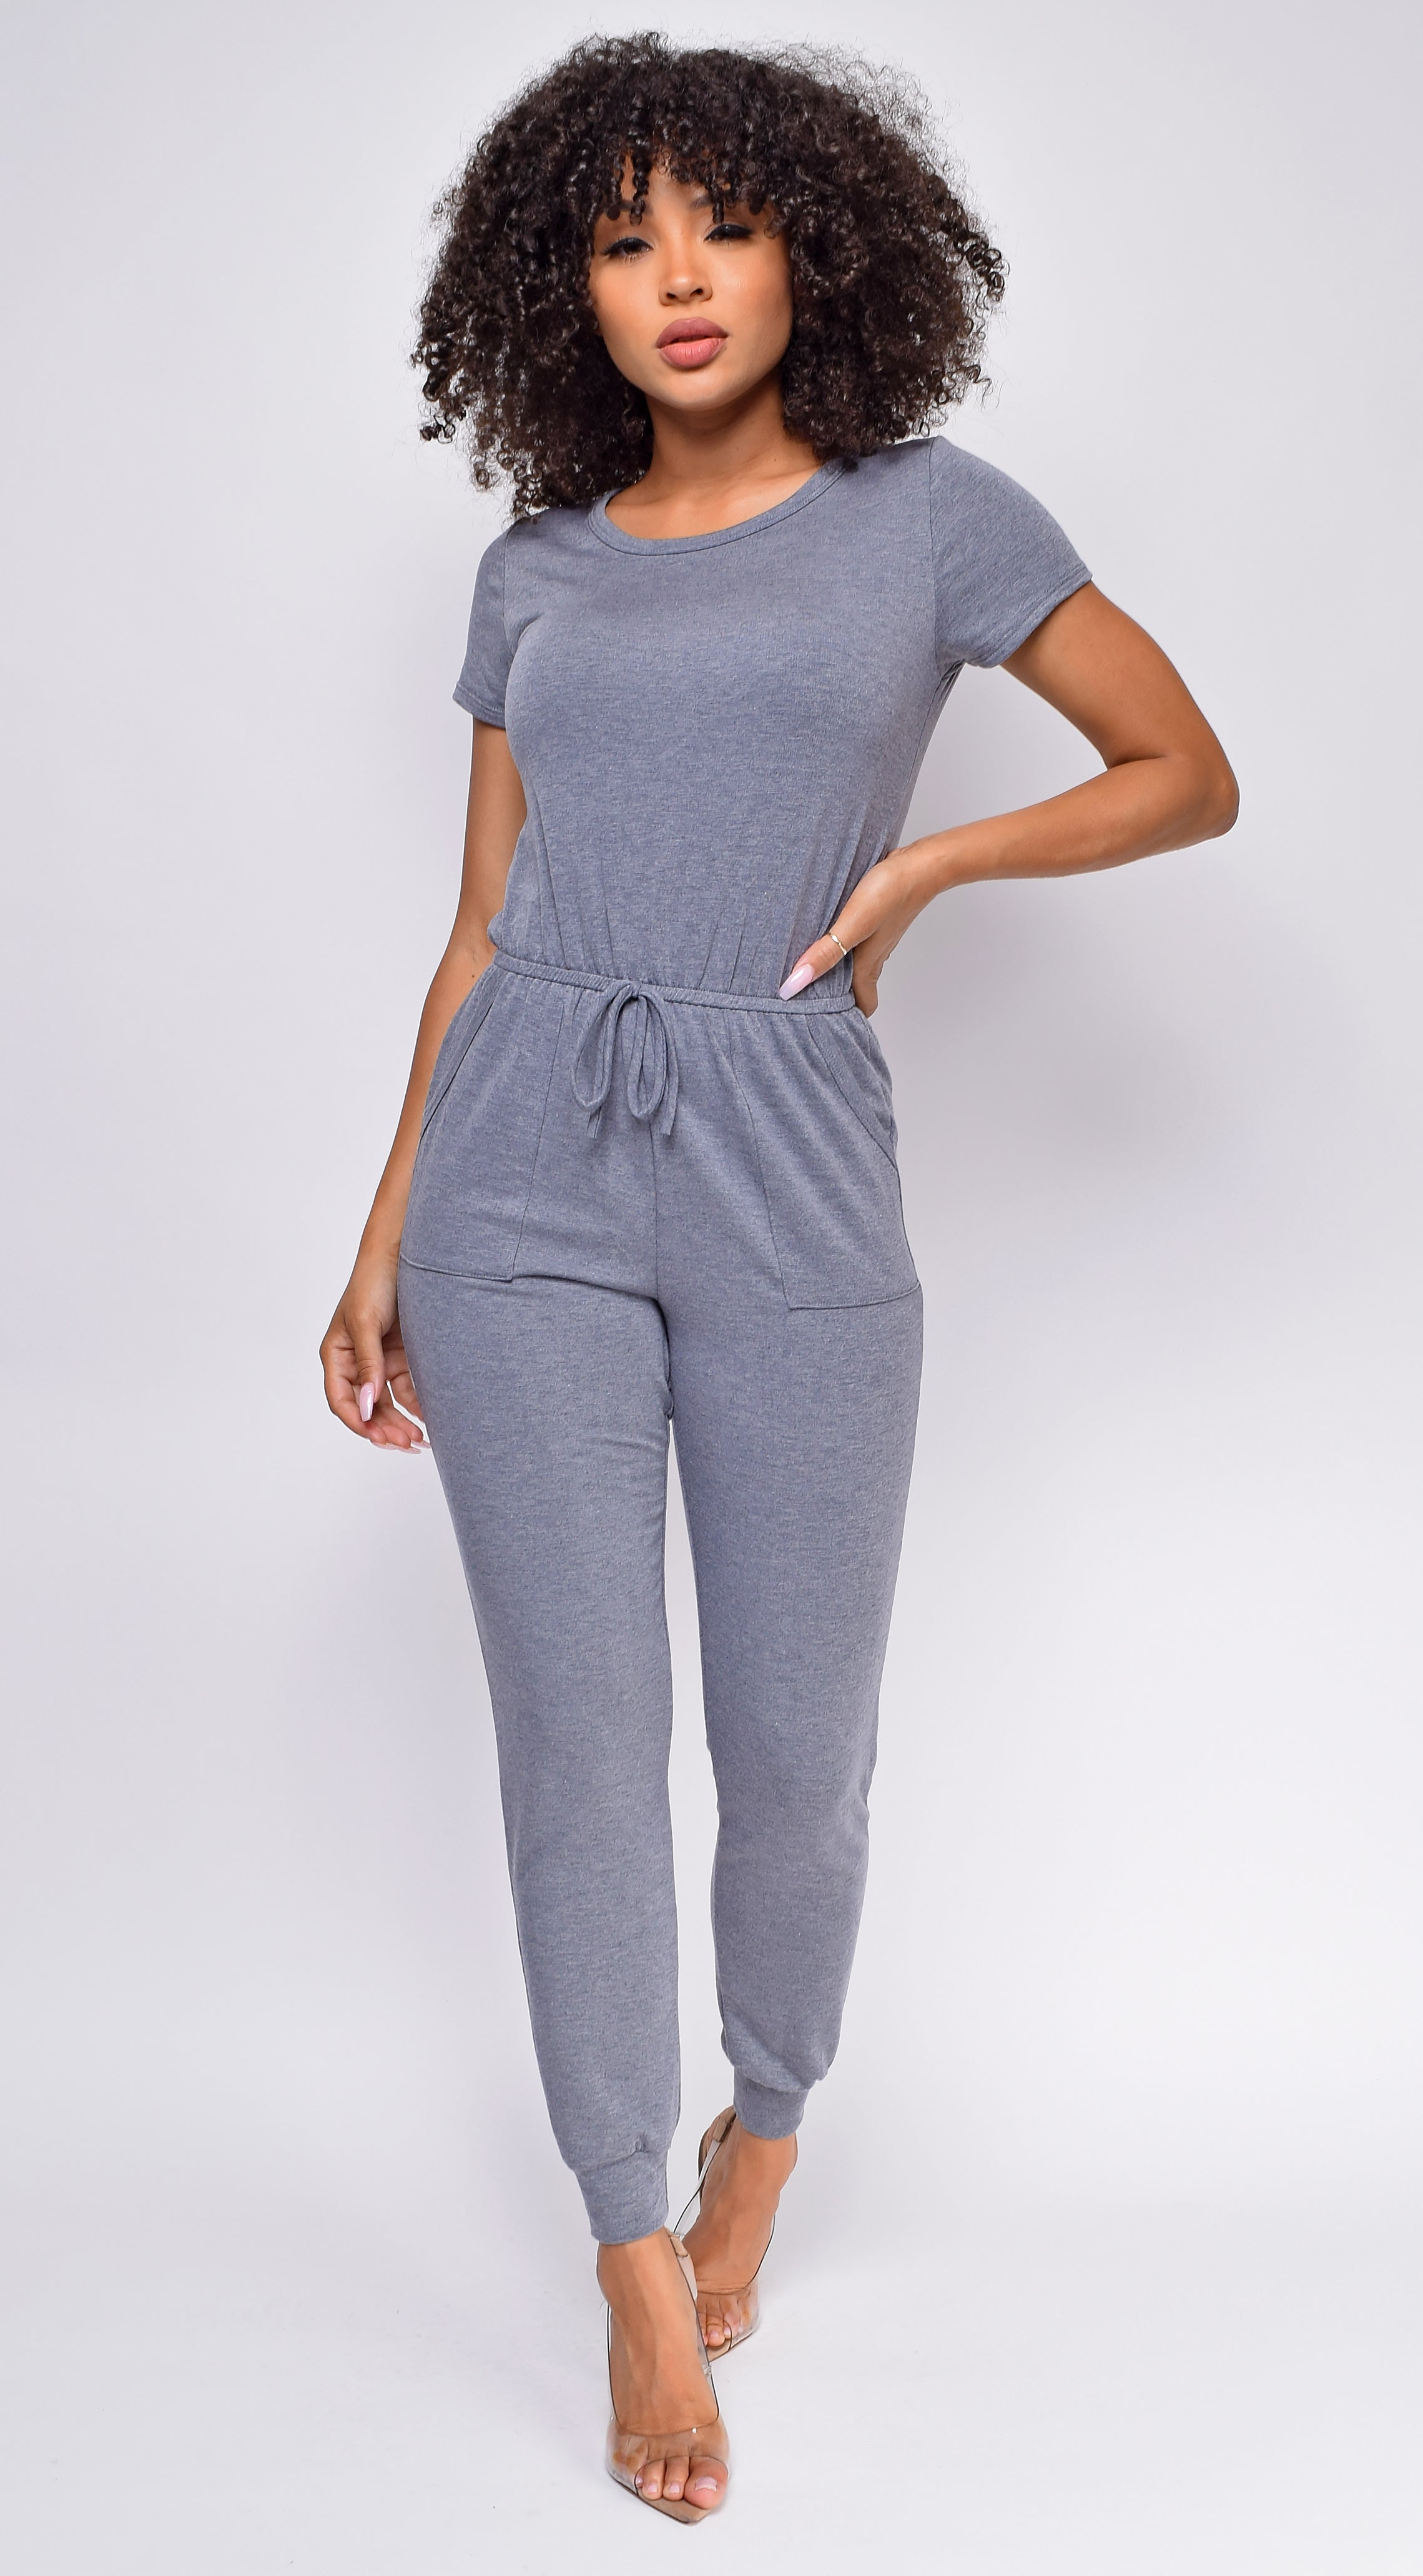 All Day Long Blue Grey Short Sleeve Drawstring Jogger Jumpsuit